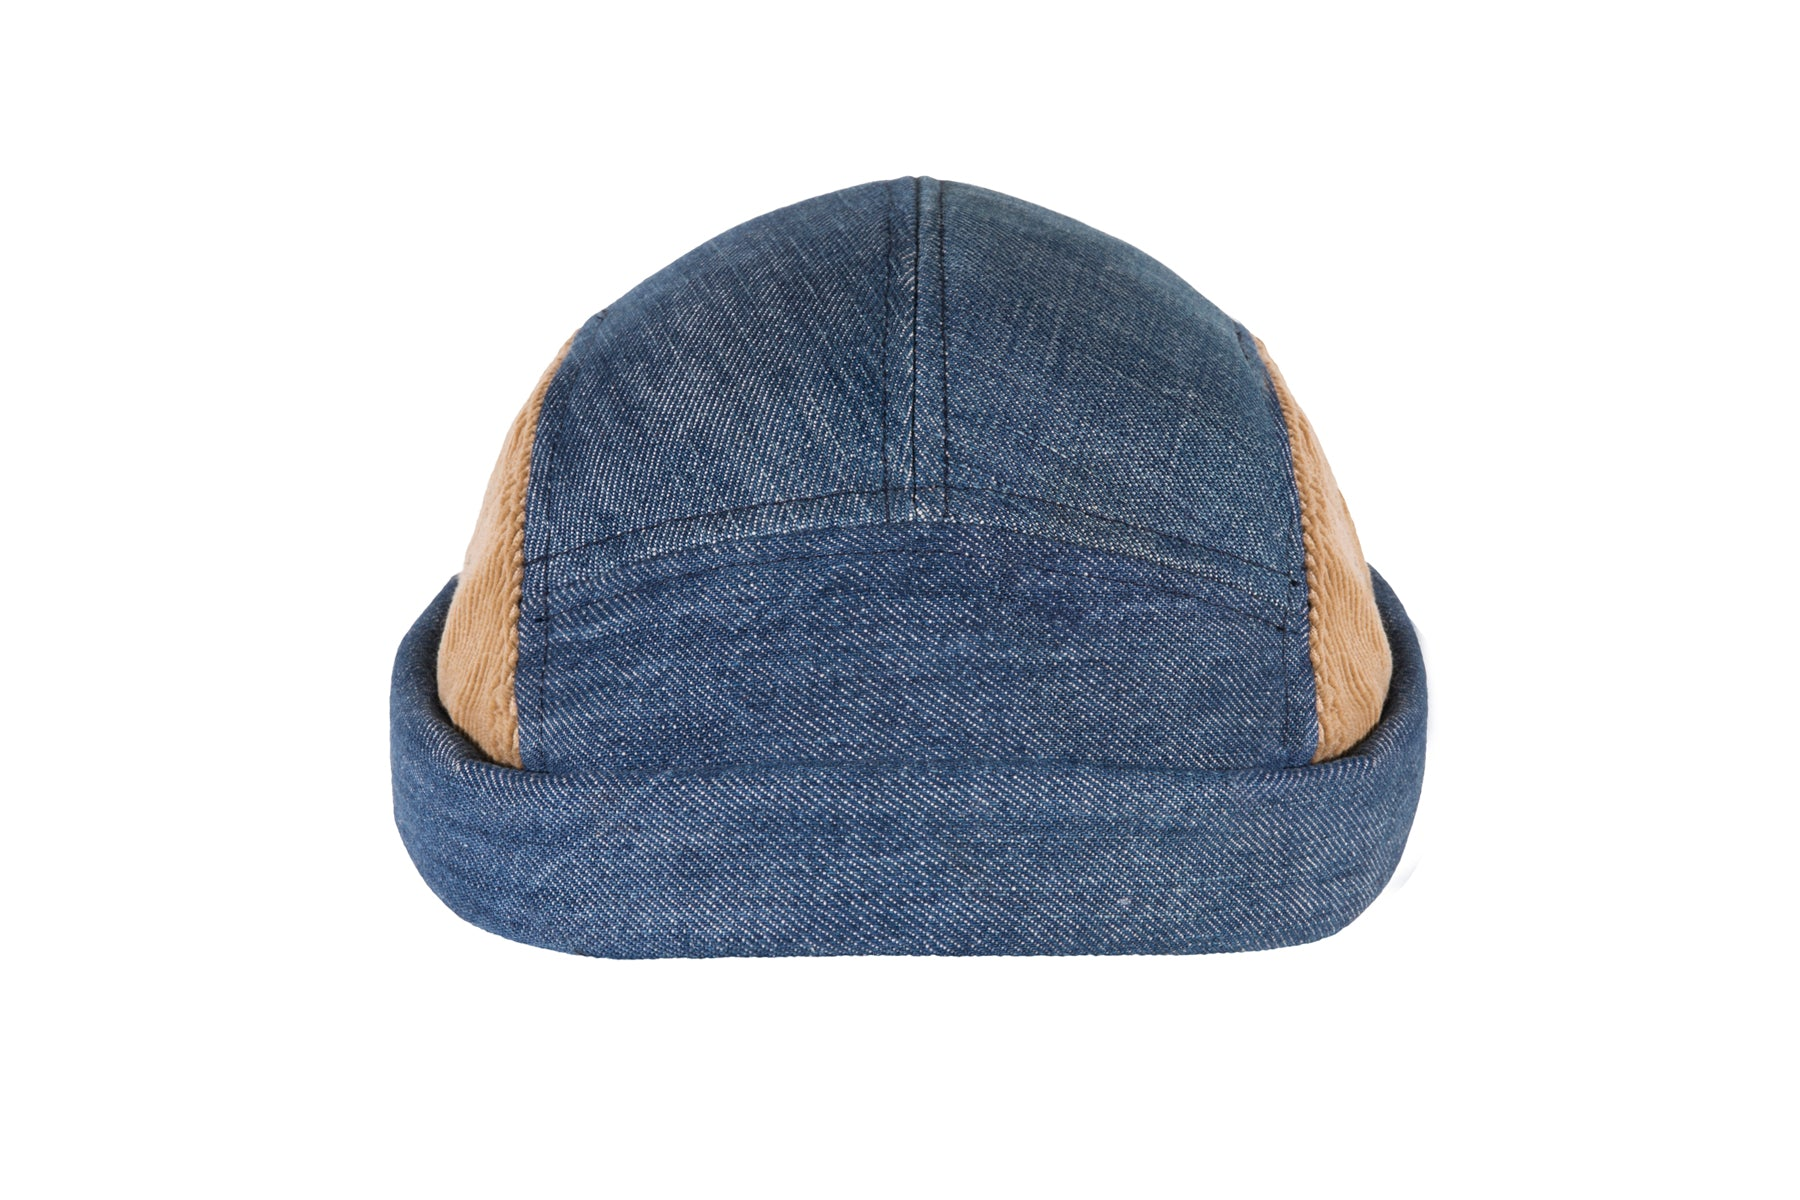 Miki breton bleu et camel, jean & velour, modèle unique, 100% coton, Miaraka, réglable, adaptable, unisexe, uniforme, 5 panel, authentique, vintage, éthique, docker miki, worker hat, textile, denim, résistant, miki jean et velour, fait à la main, made in France, must have, incontournable, tendance, couvre chef, accessoire iconique, chapellerie unique, fashion, streetwear, casual, miki addict, sneaker addict, collection, haut de gamme, environnement, marins, résistant, surecyclage